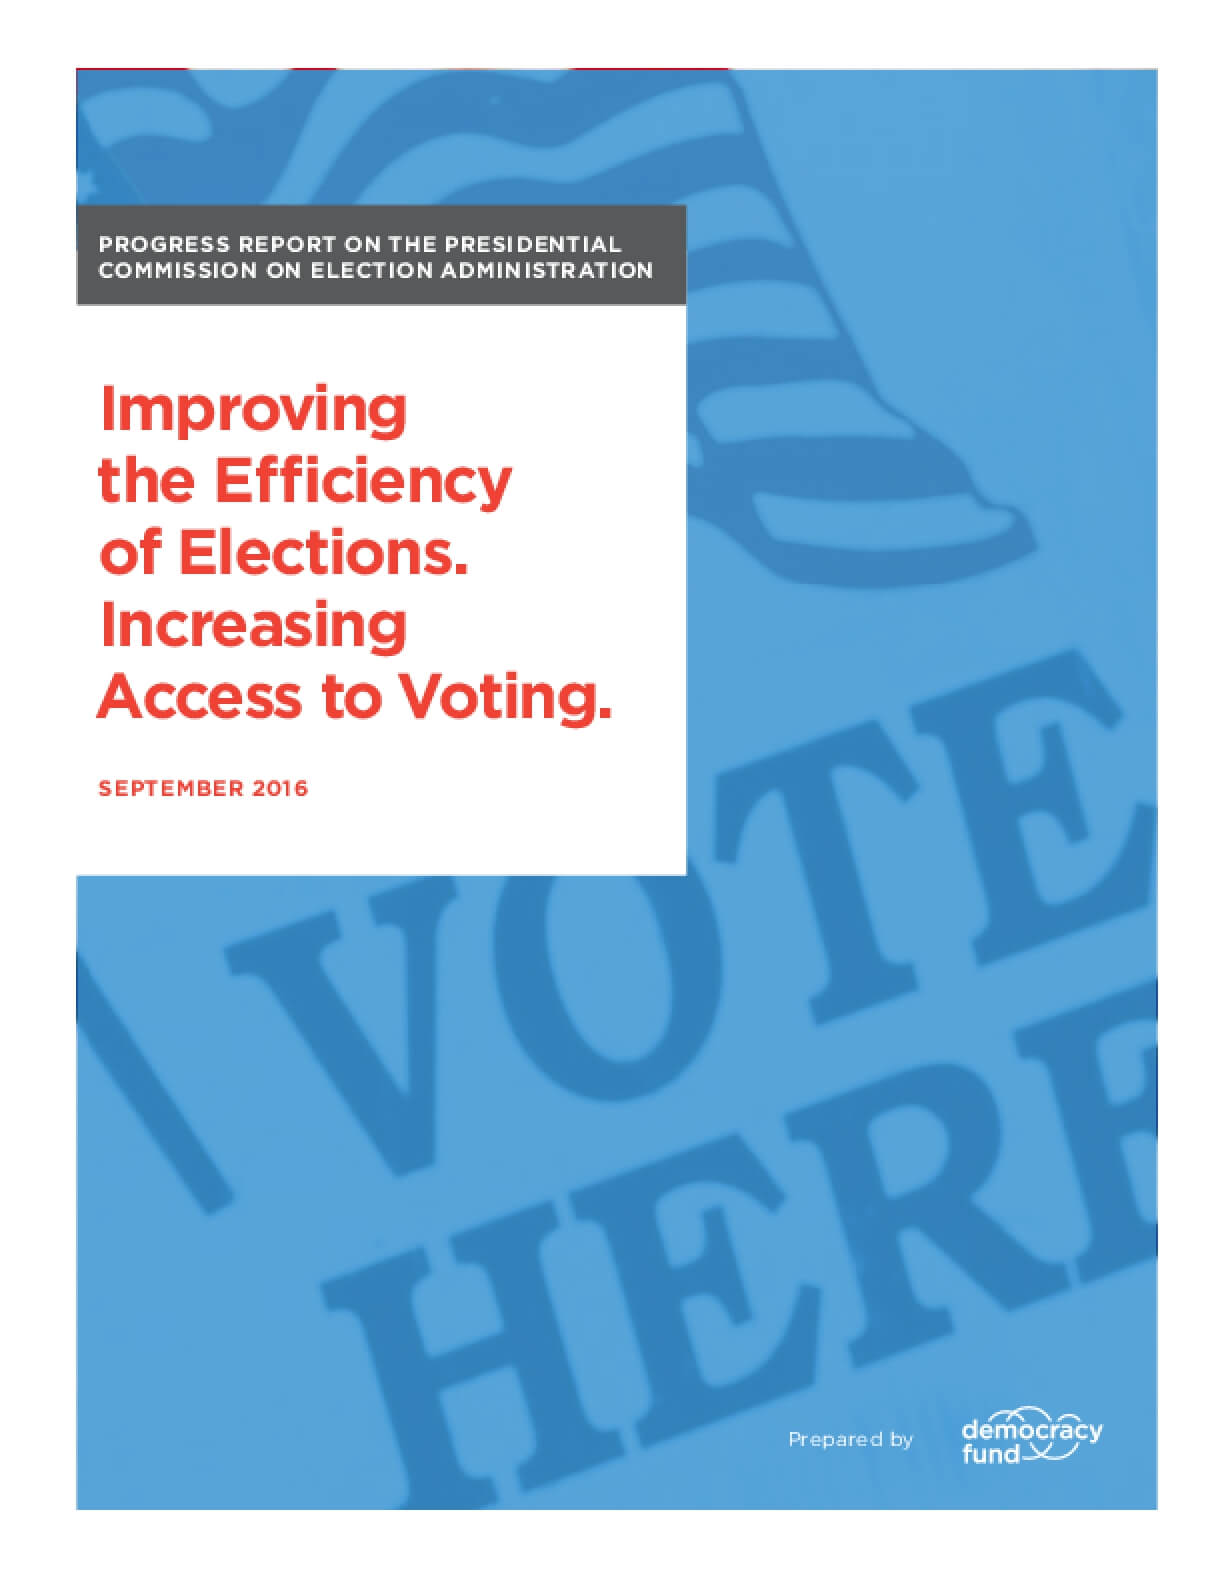 Progress Report on the Presidential Commission on Election Administration: Improving the Efficiency of Election, Increasing Access to Voting